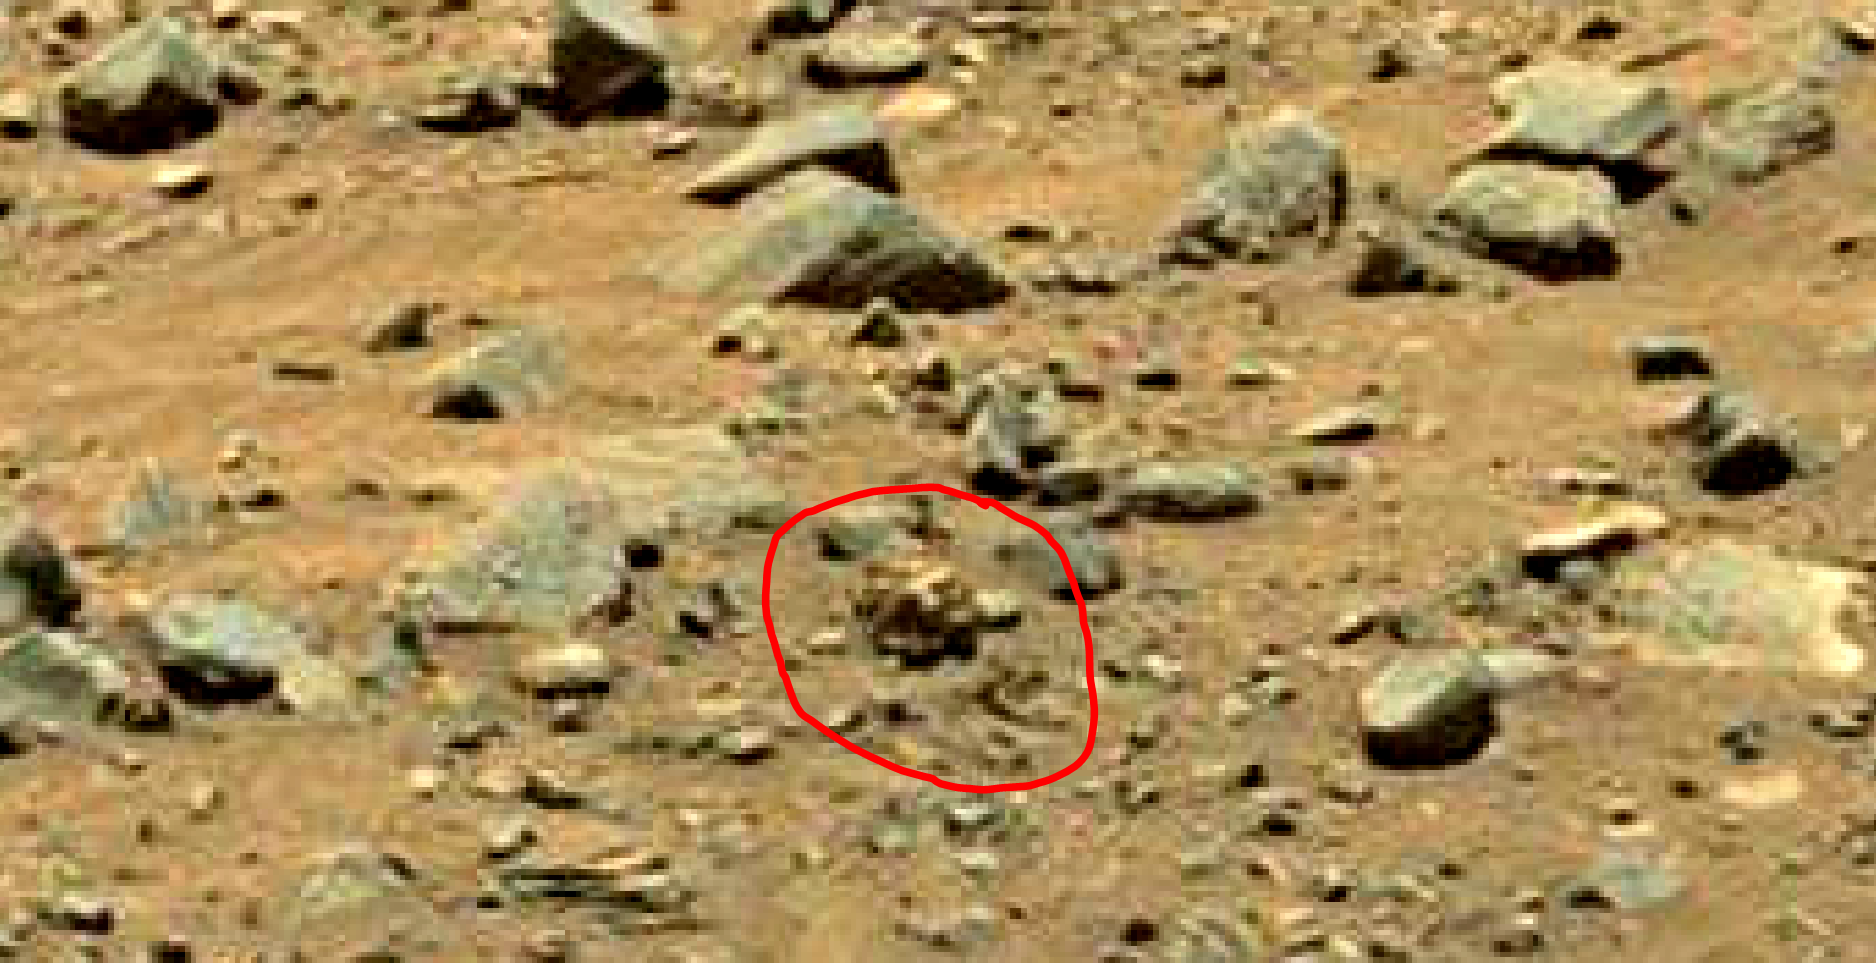 mars sol 1399 anomaly artifacts 16 was life on mars